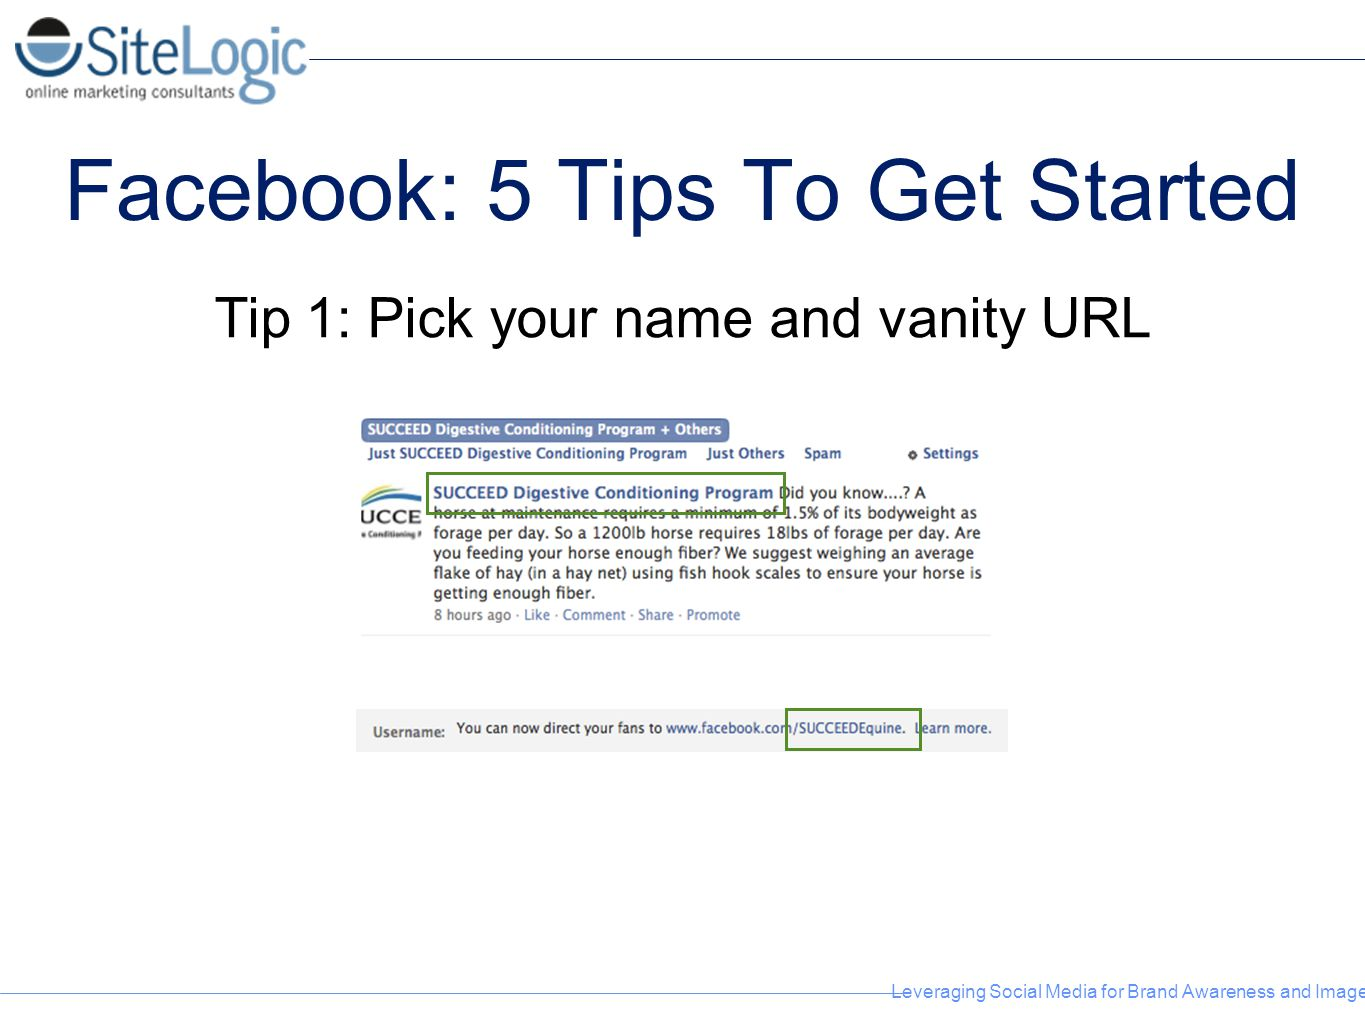 Facebook: 5 Tips To Get Started